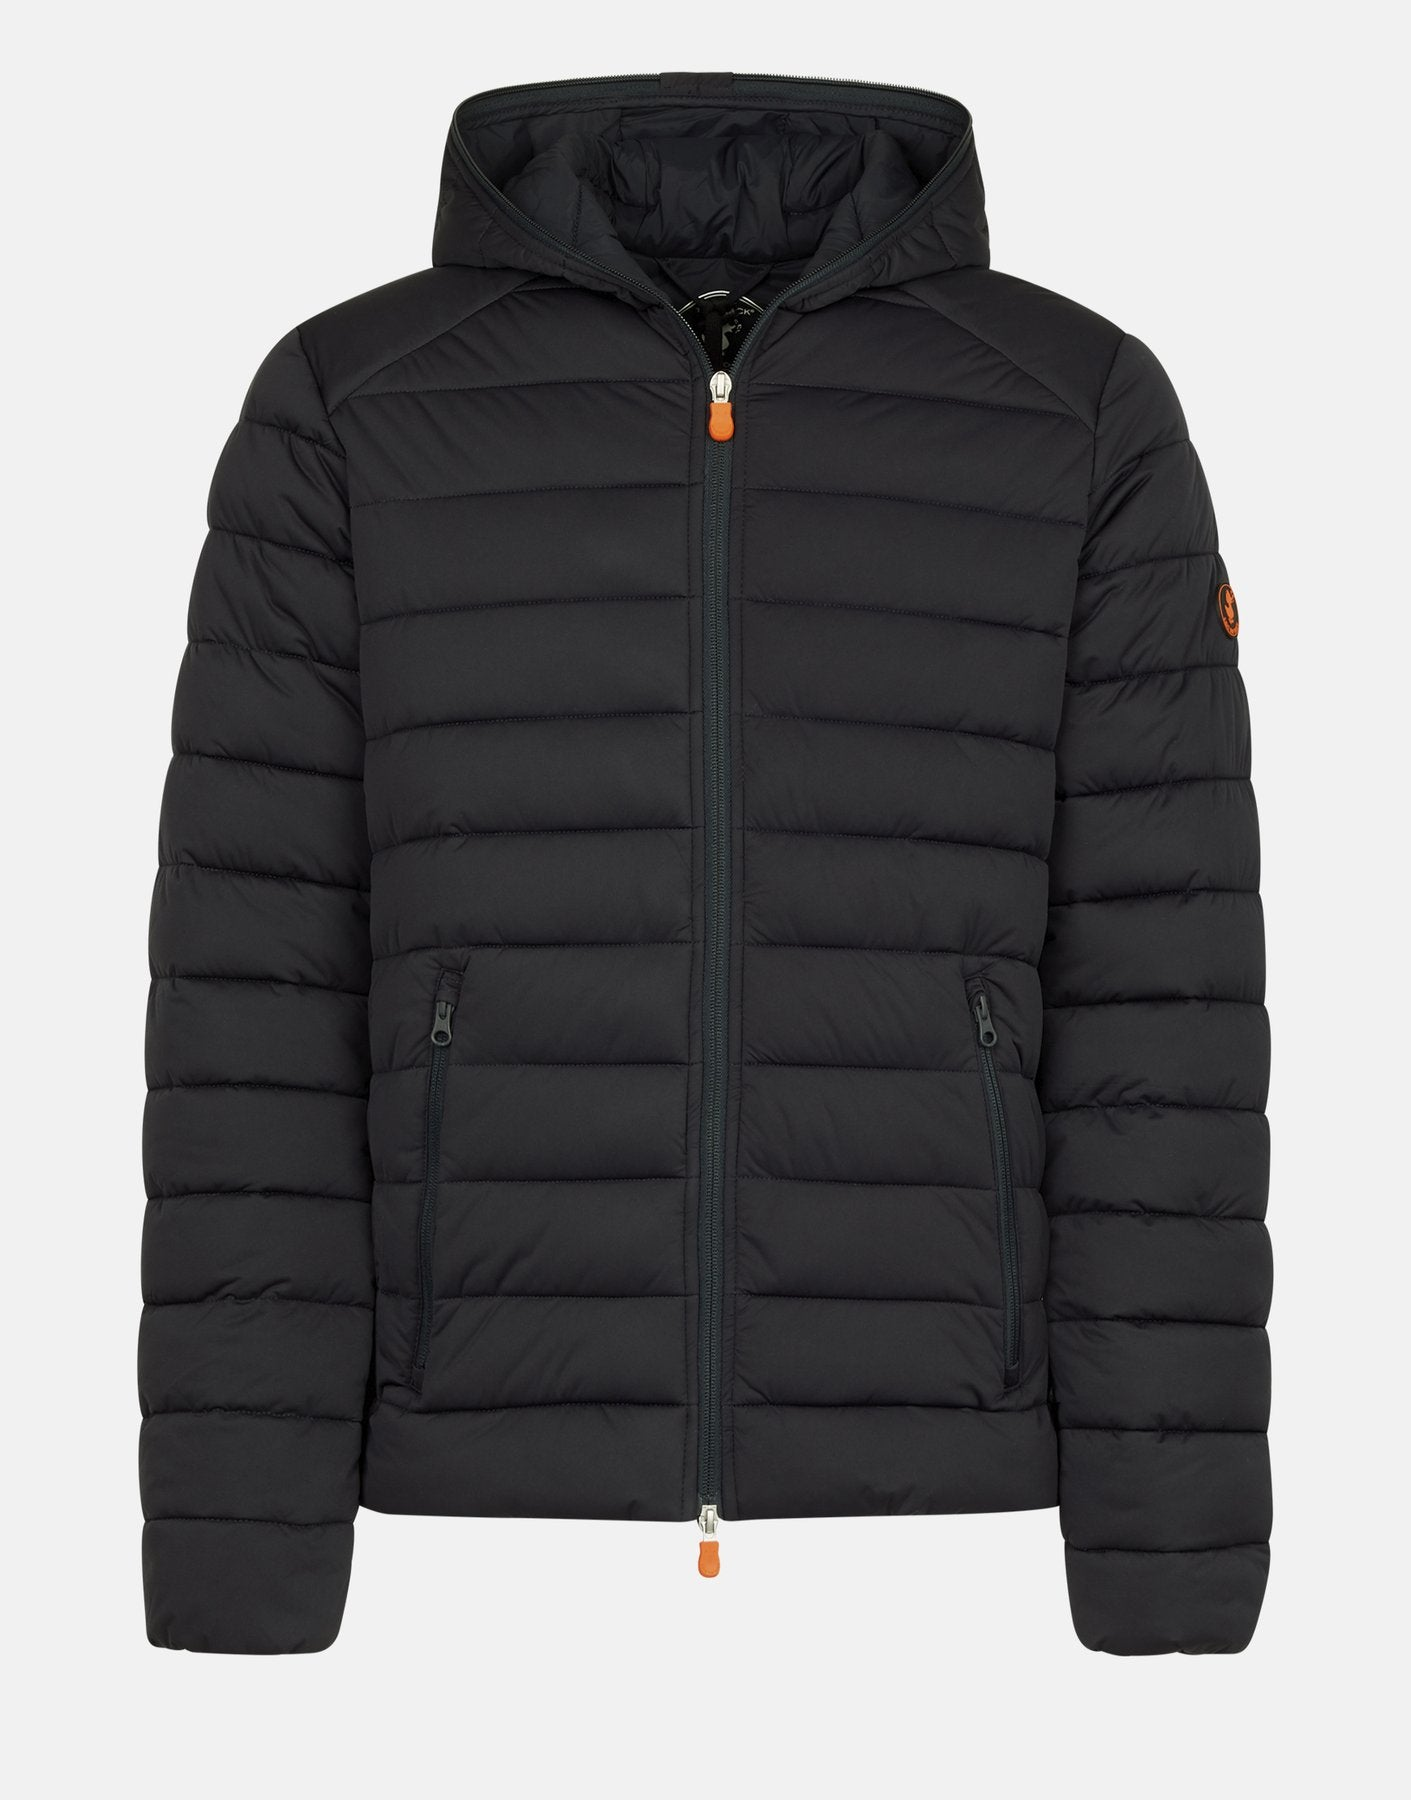 See this material featured on the Unisex SOLD Hooded Puffer Jacket